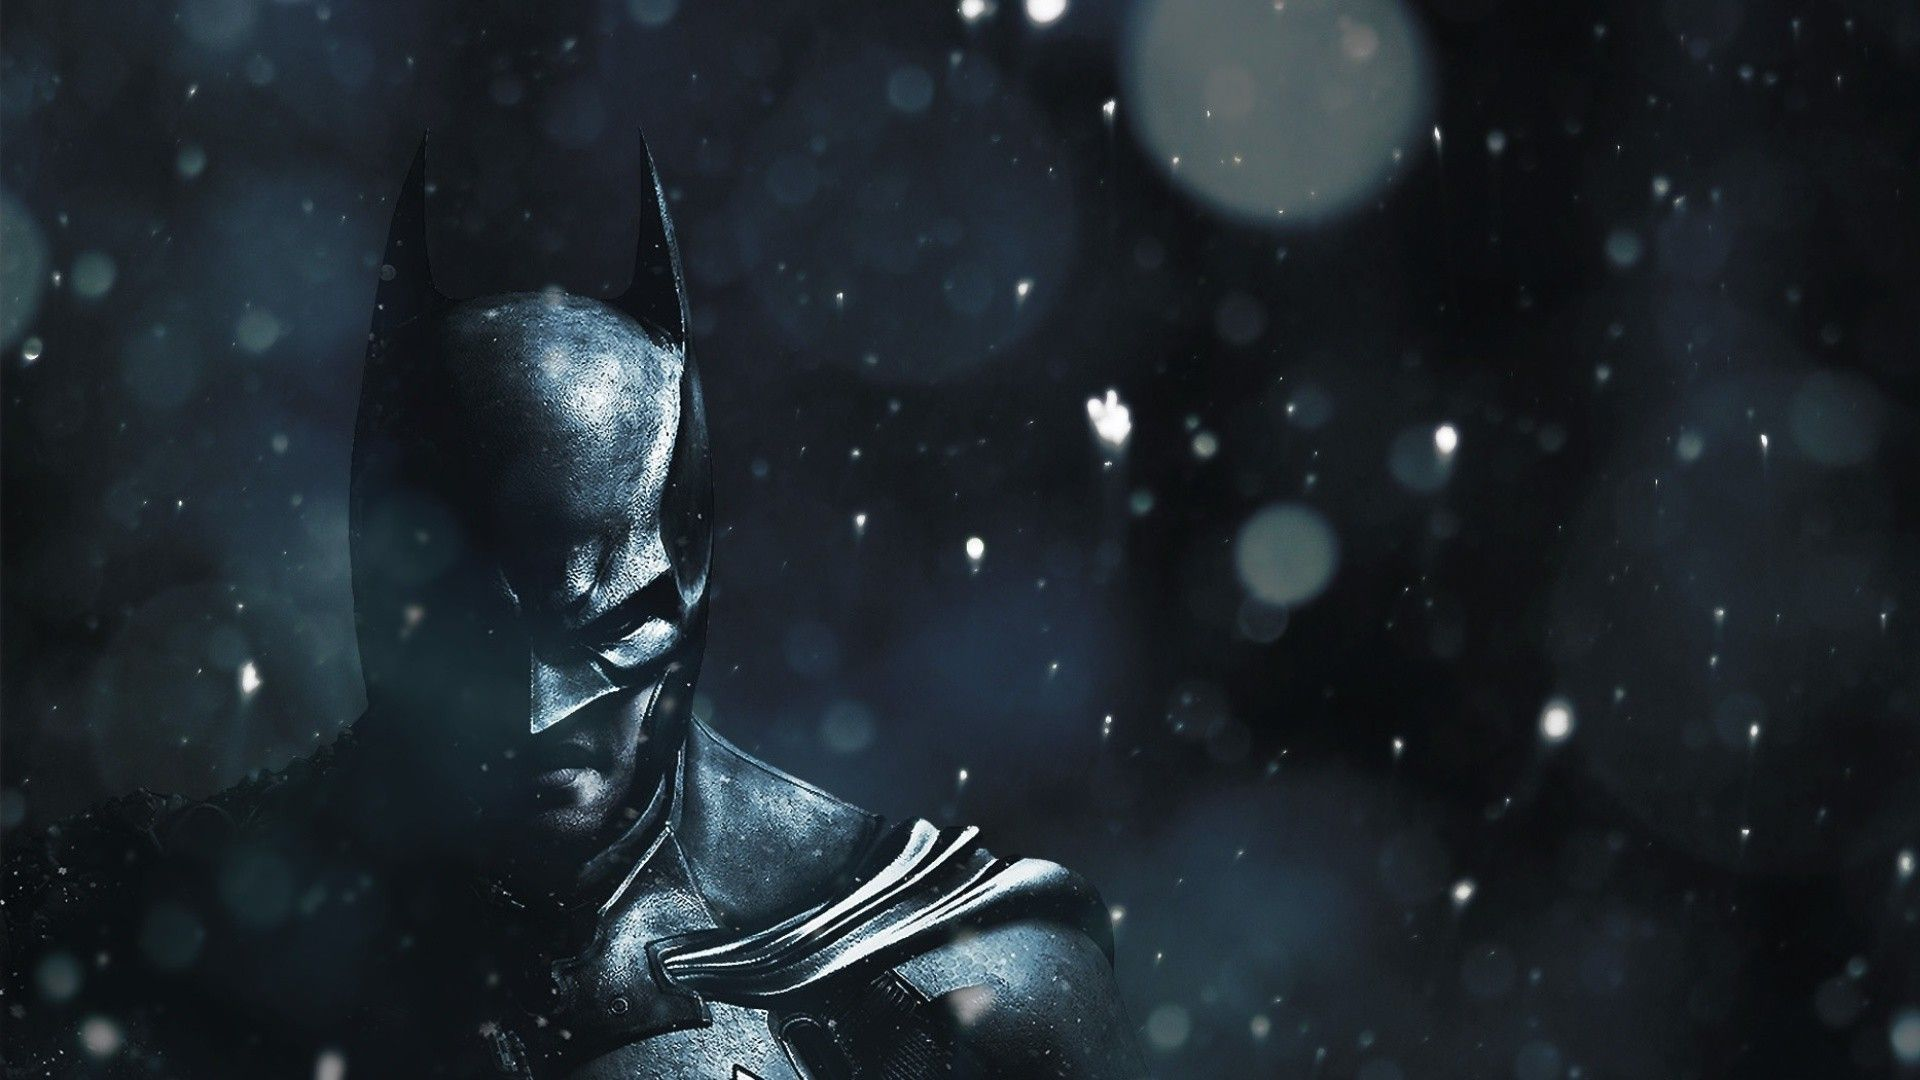 Batman Hd Wallpapers Group with items